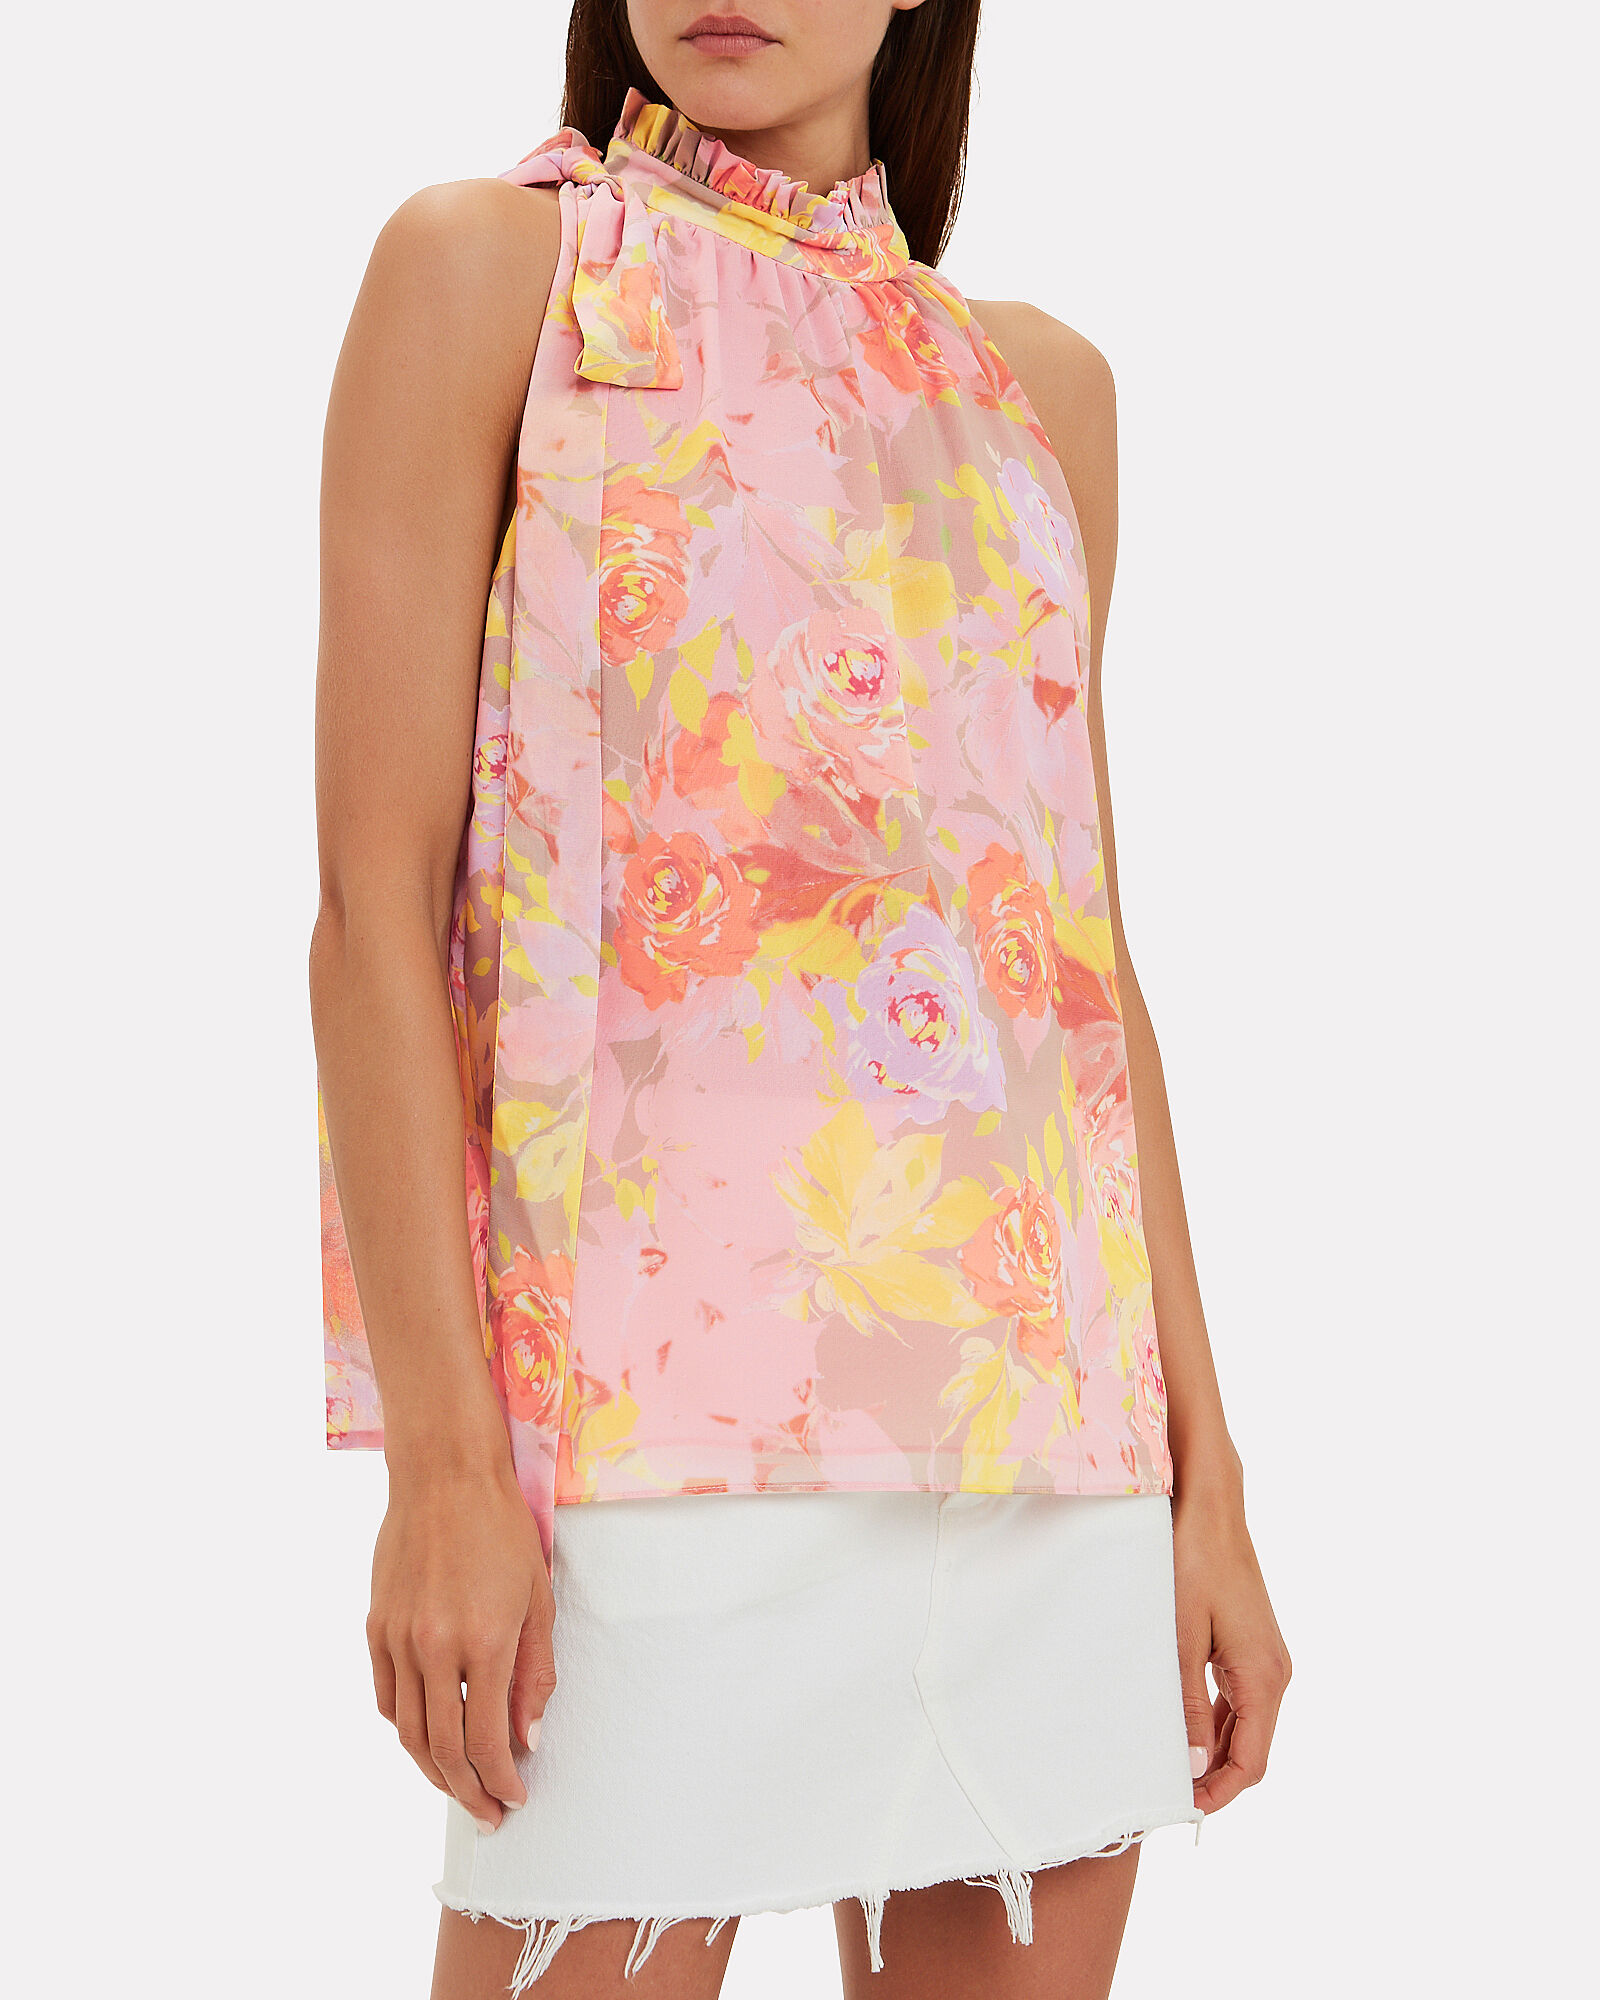 Valencia Floral Crepe Sleeveless Top, MULTI, hi-res